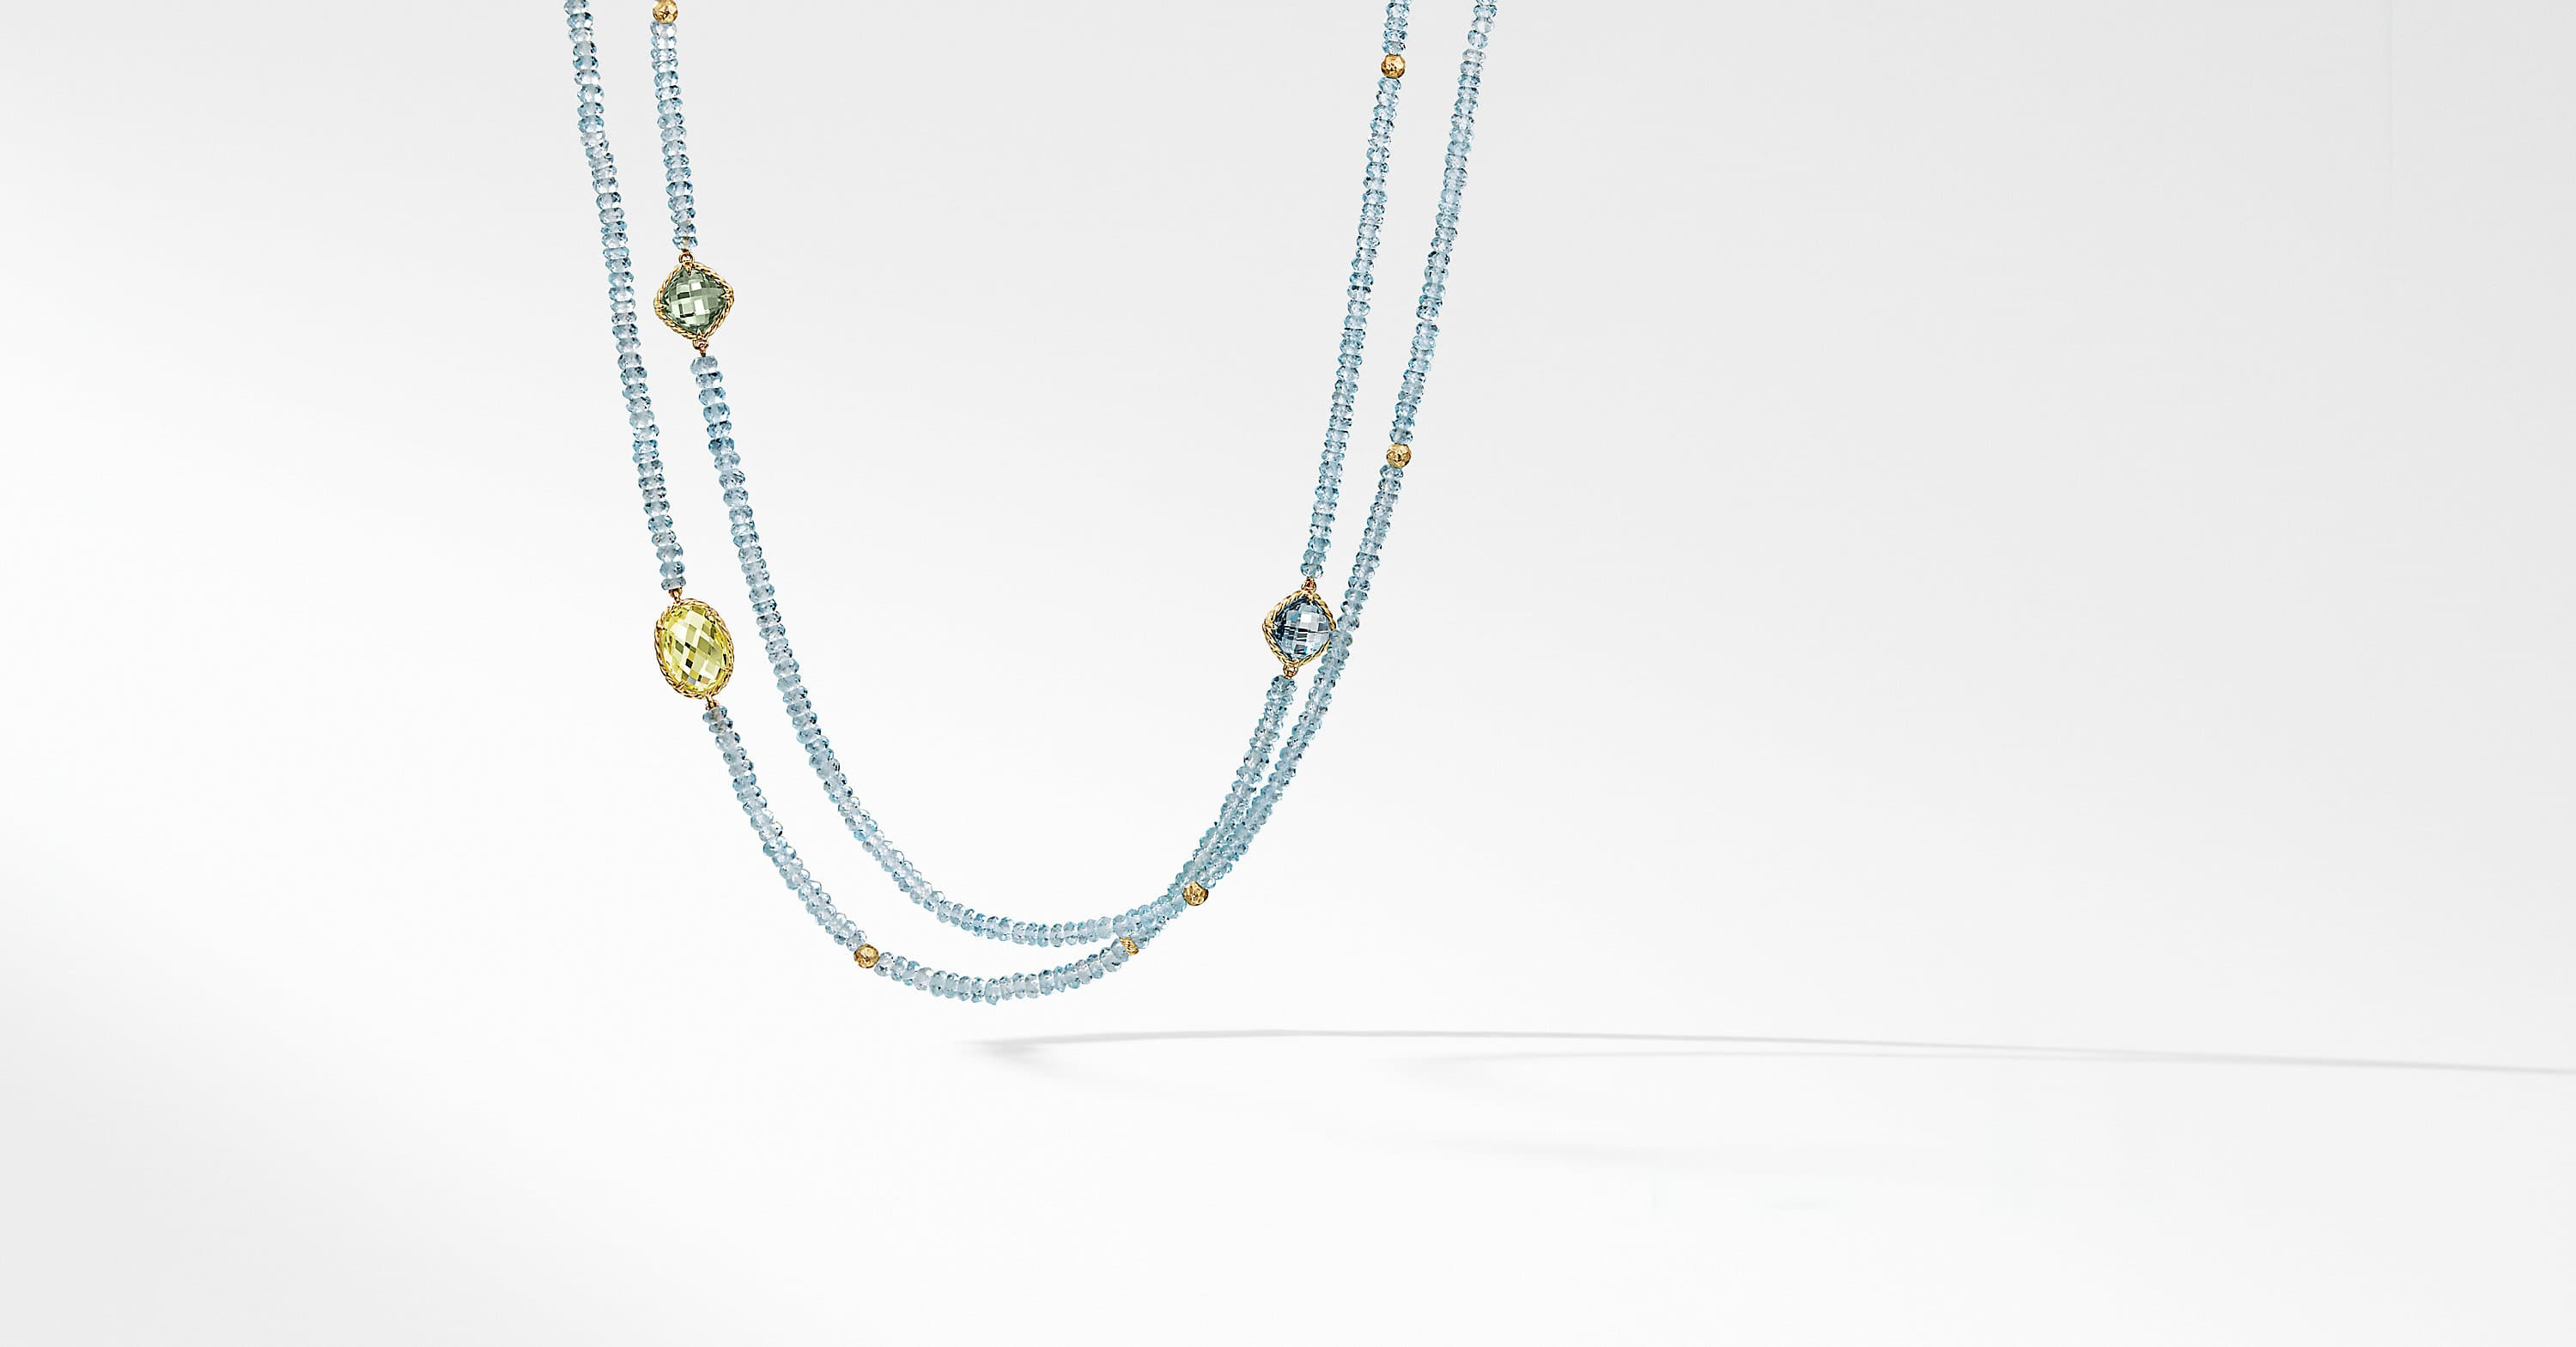 DY Signature Bead Necklace in 18K Gold